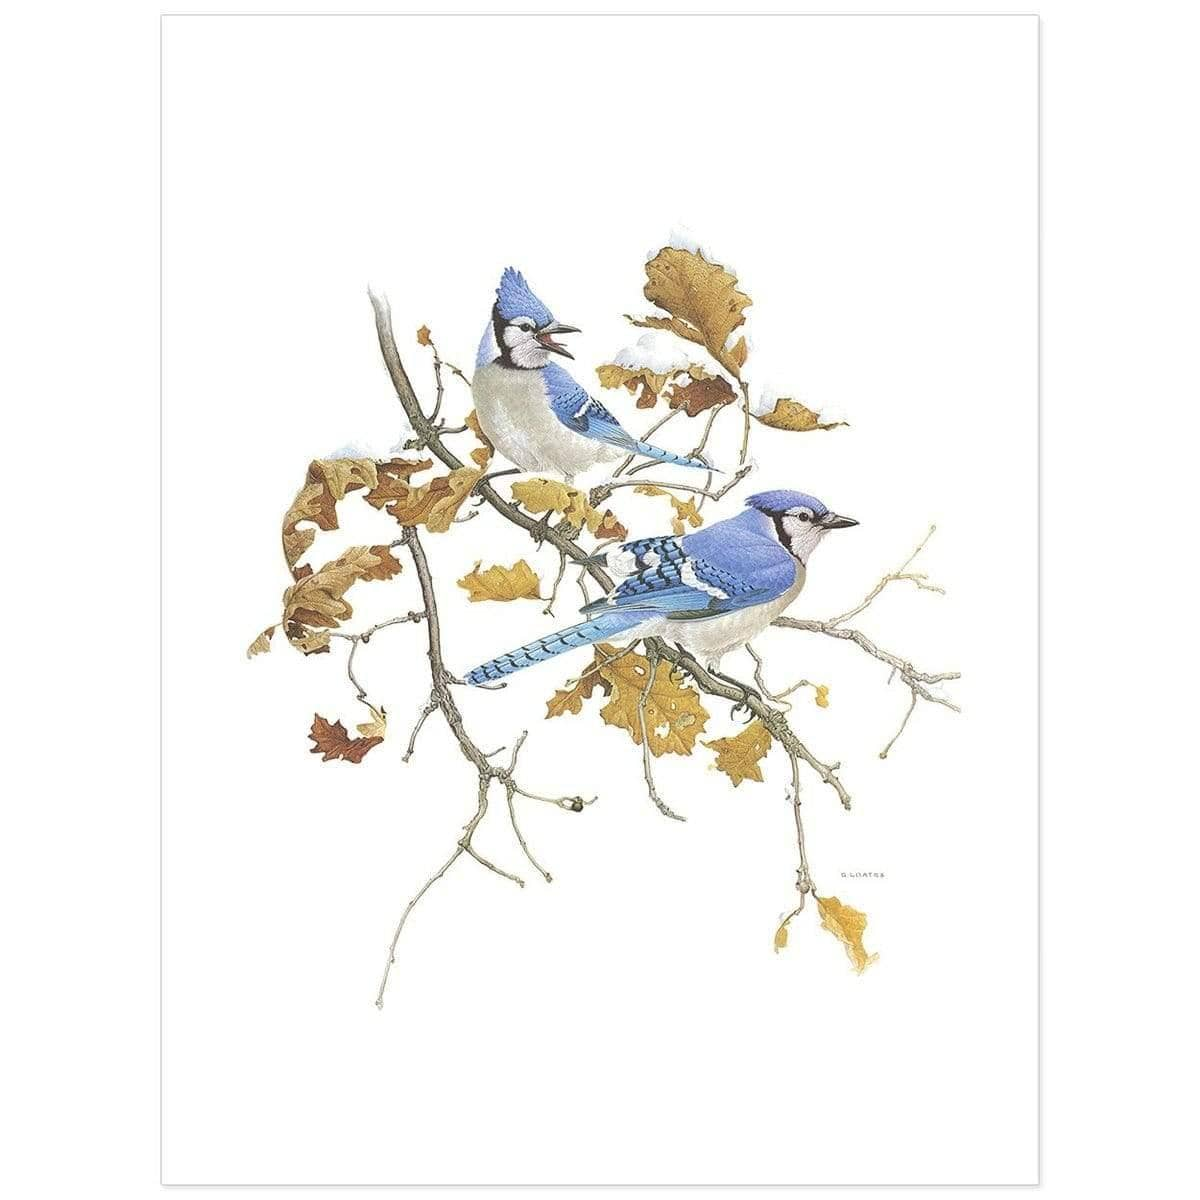 Blue Jays - Art Print by Glen Loates from the Glen Loates Store